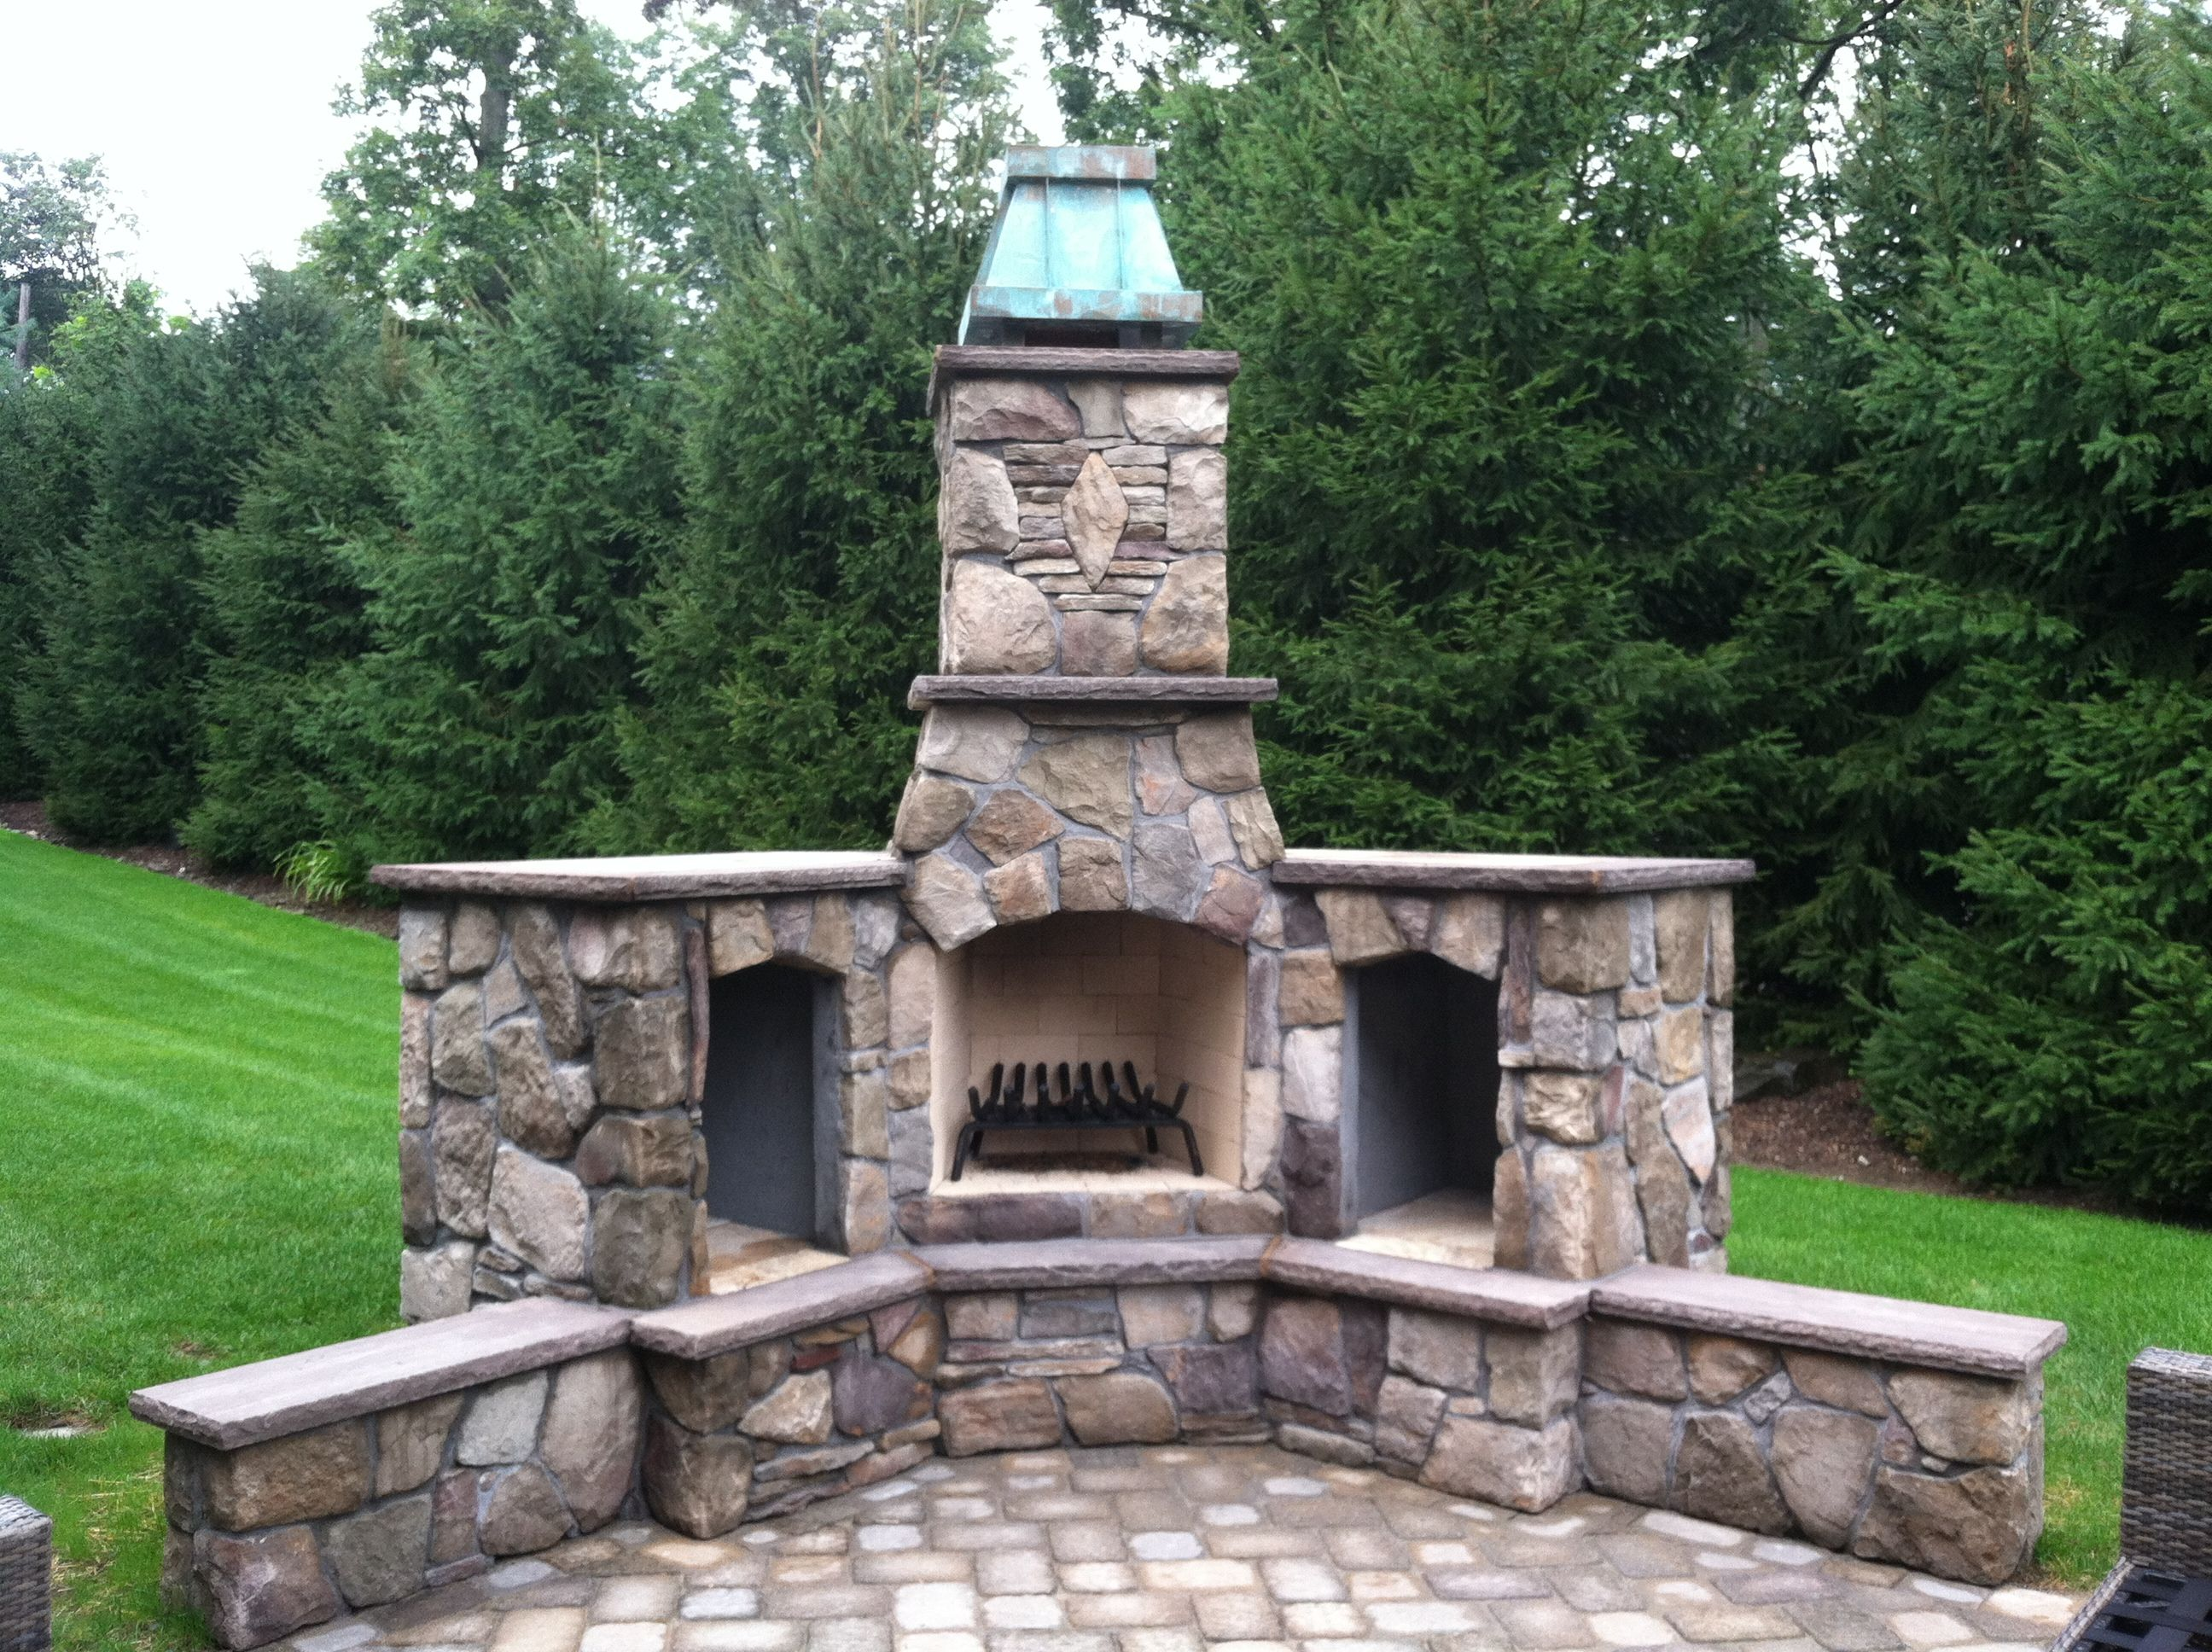 Royale Style Chimney Crown In Aged Copper From Chimneyking